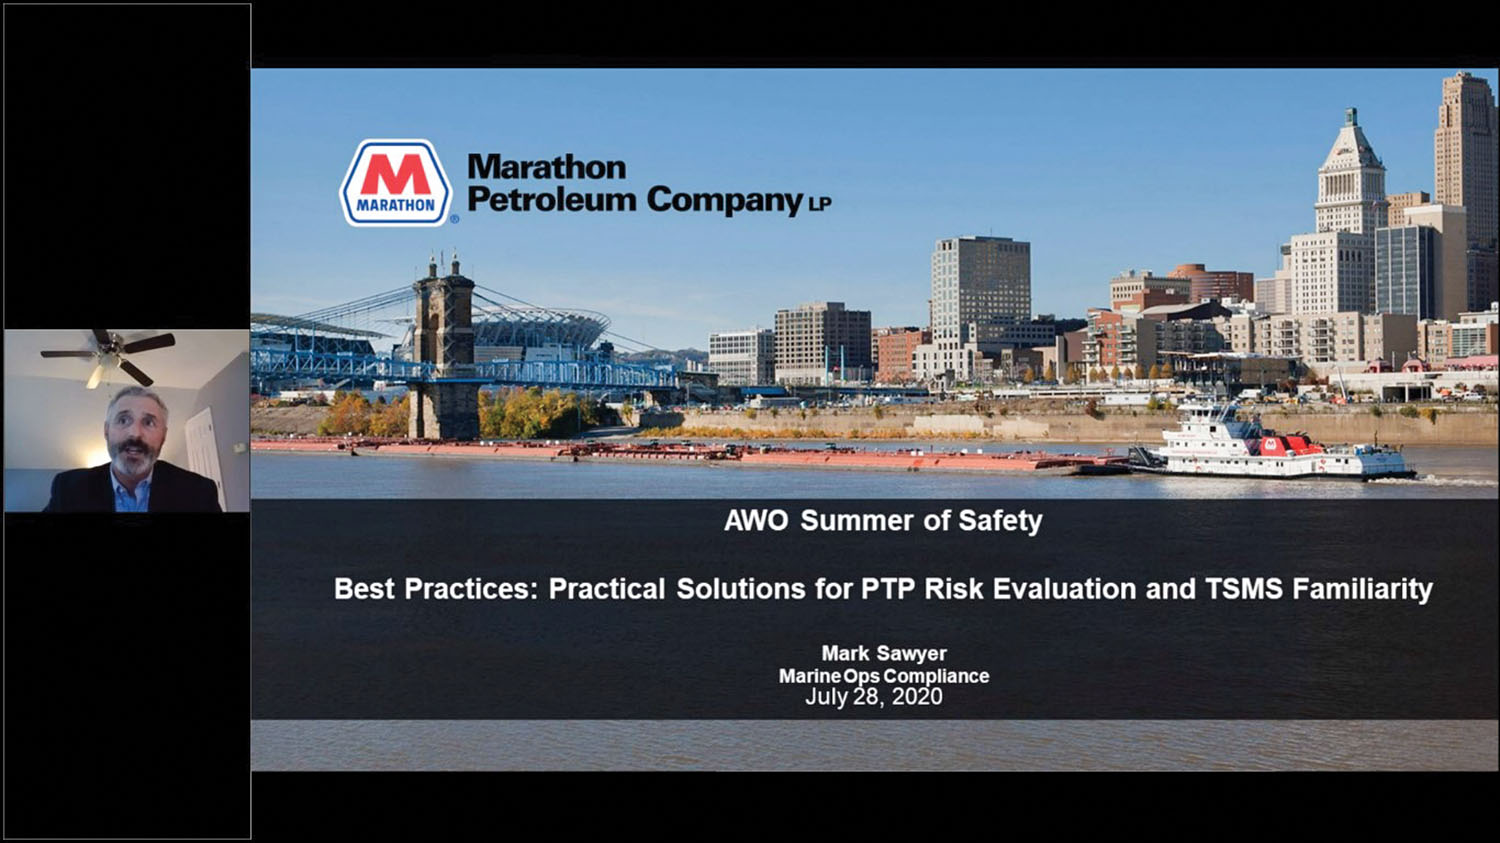 Despite COVID Restrictions, AWO Spreads Safety Message